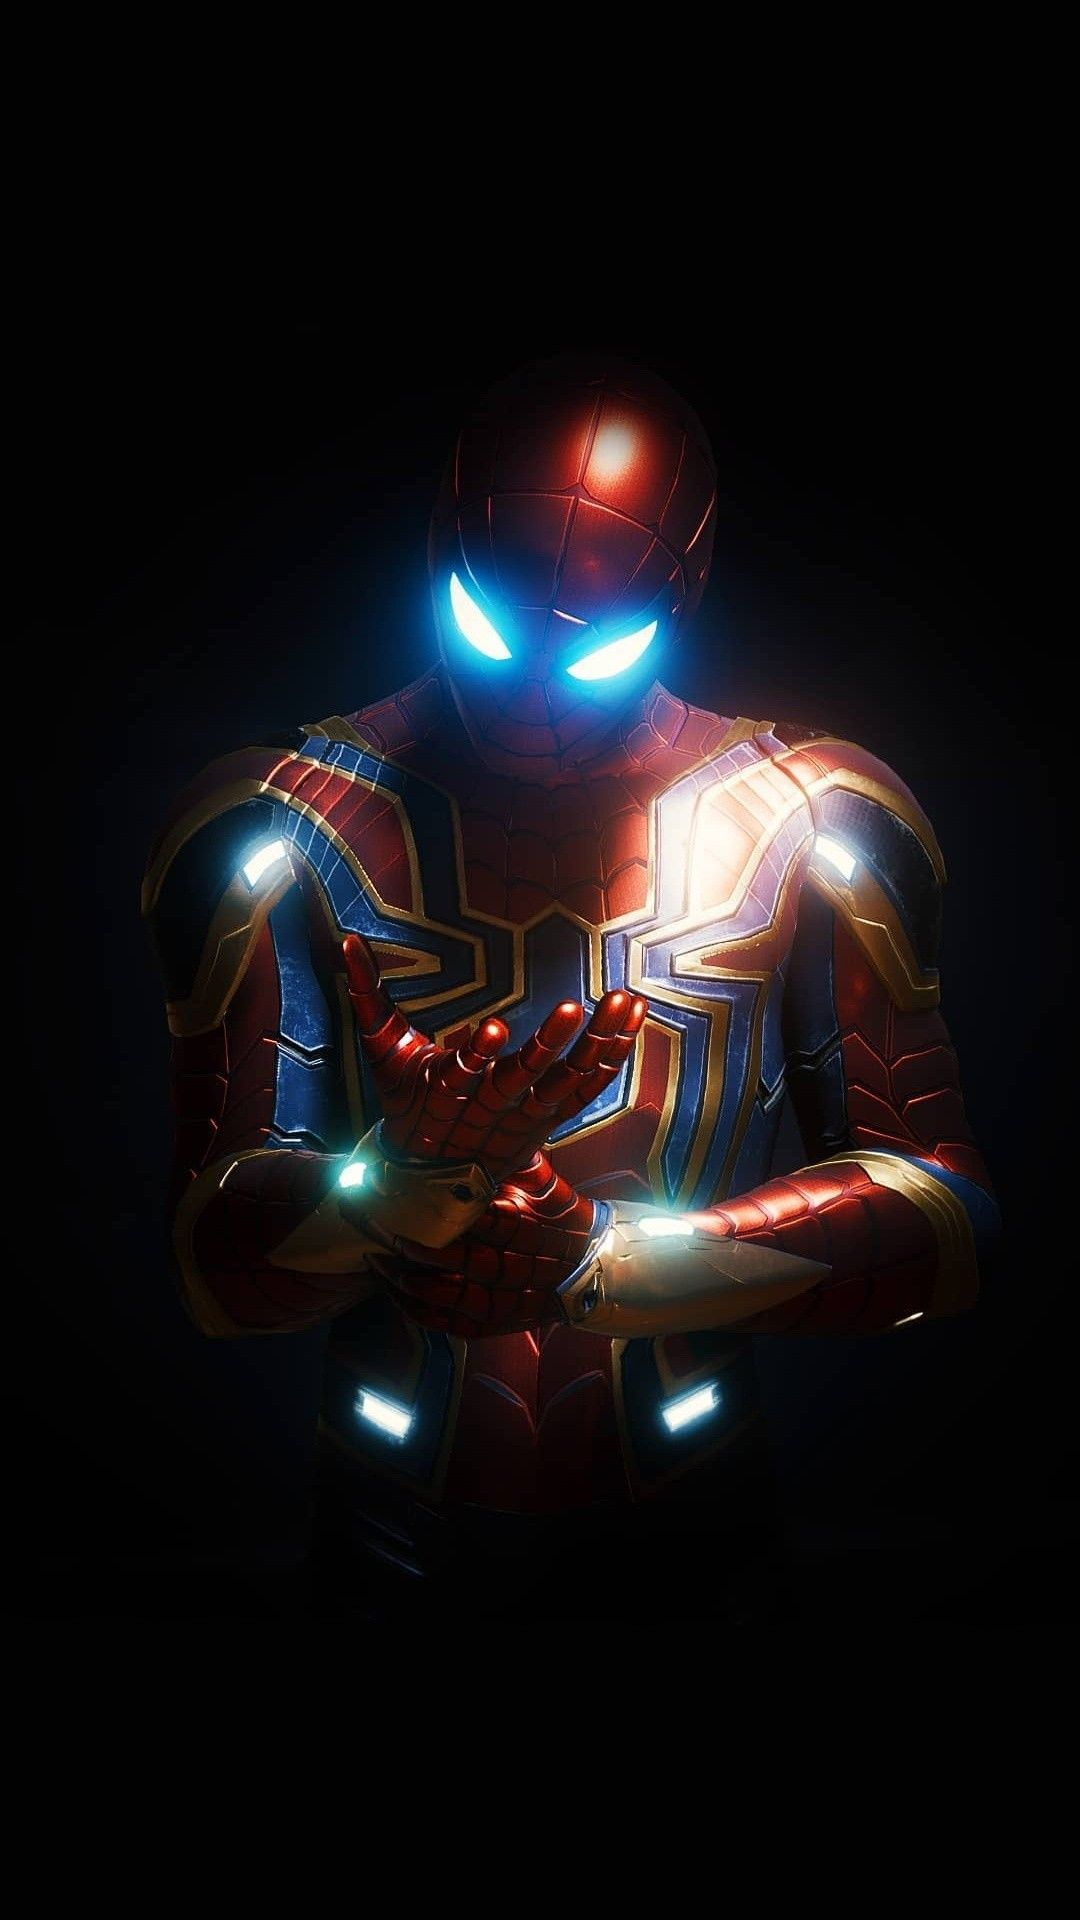 Spiderman Latest Wallpaper Download The App Now Link In